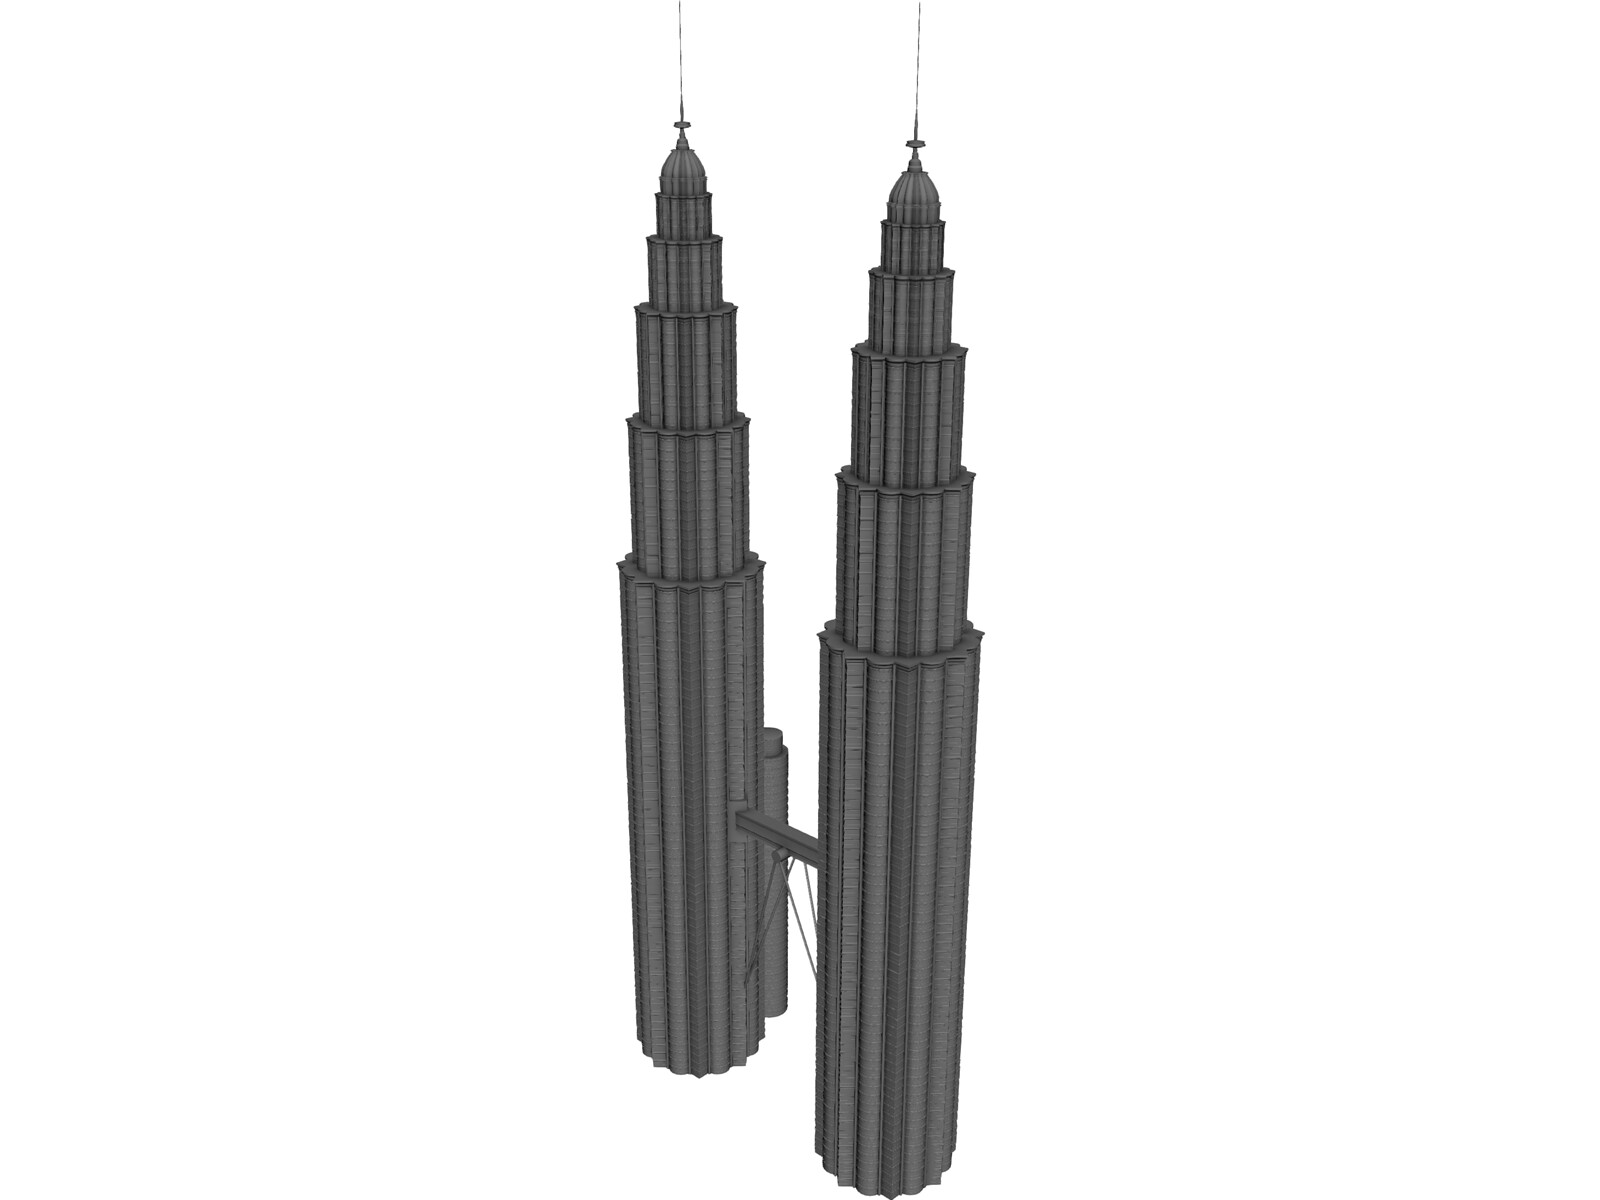 Towers Petronas